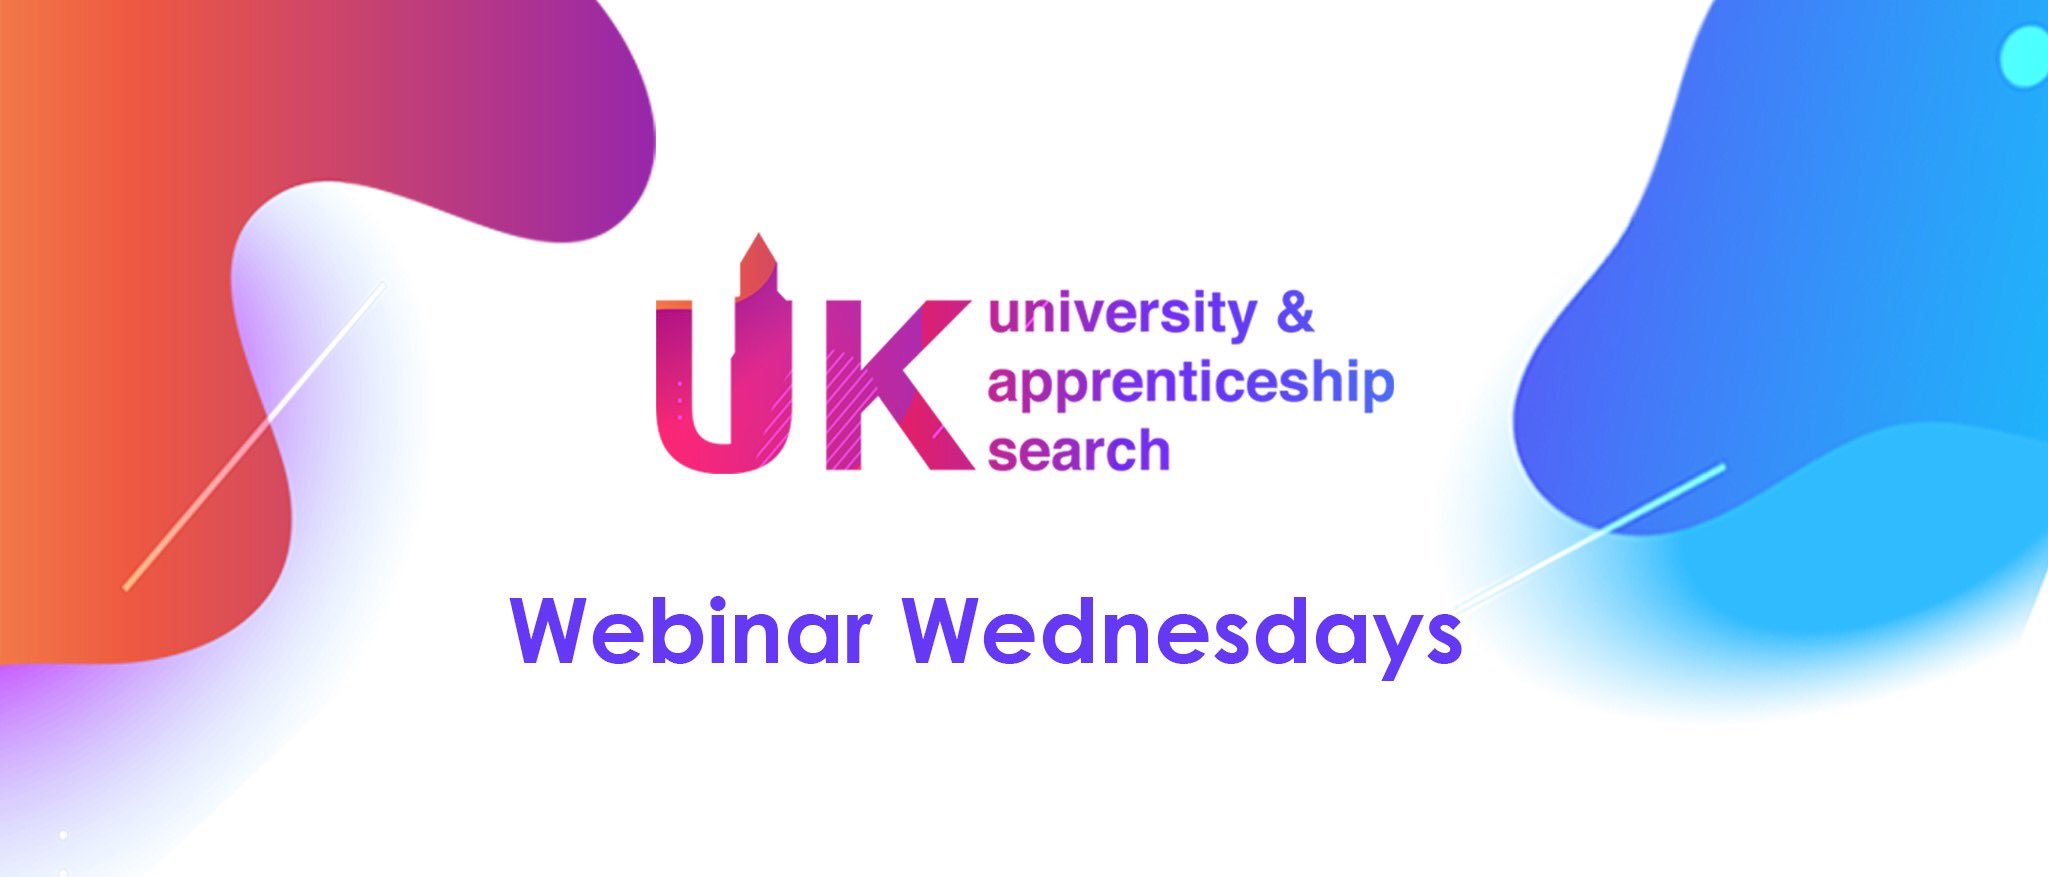 Webinar Wednesdays Are Back!